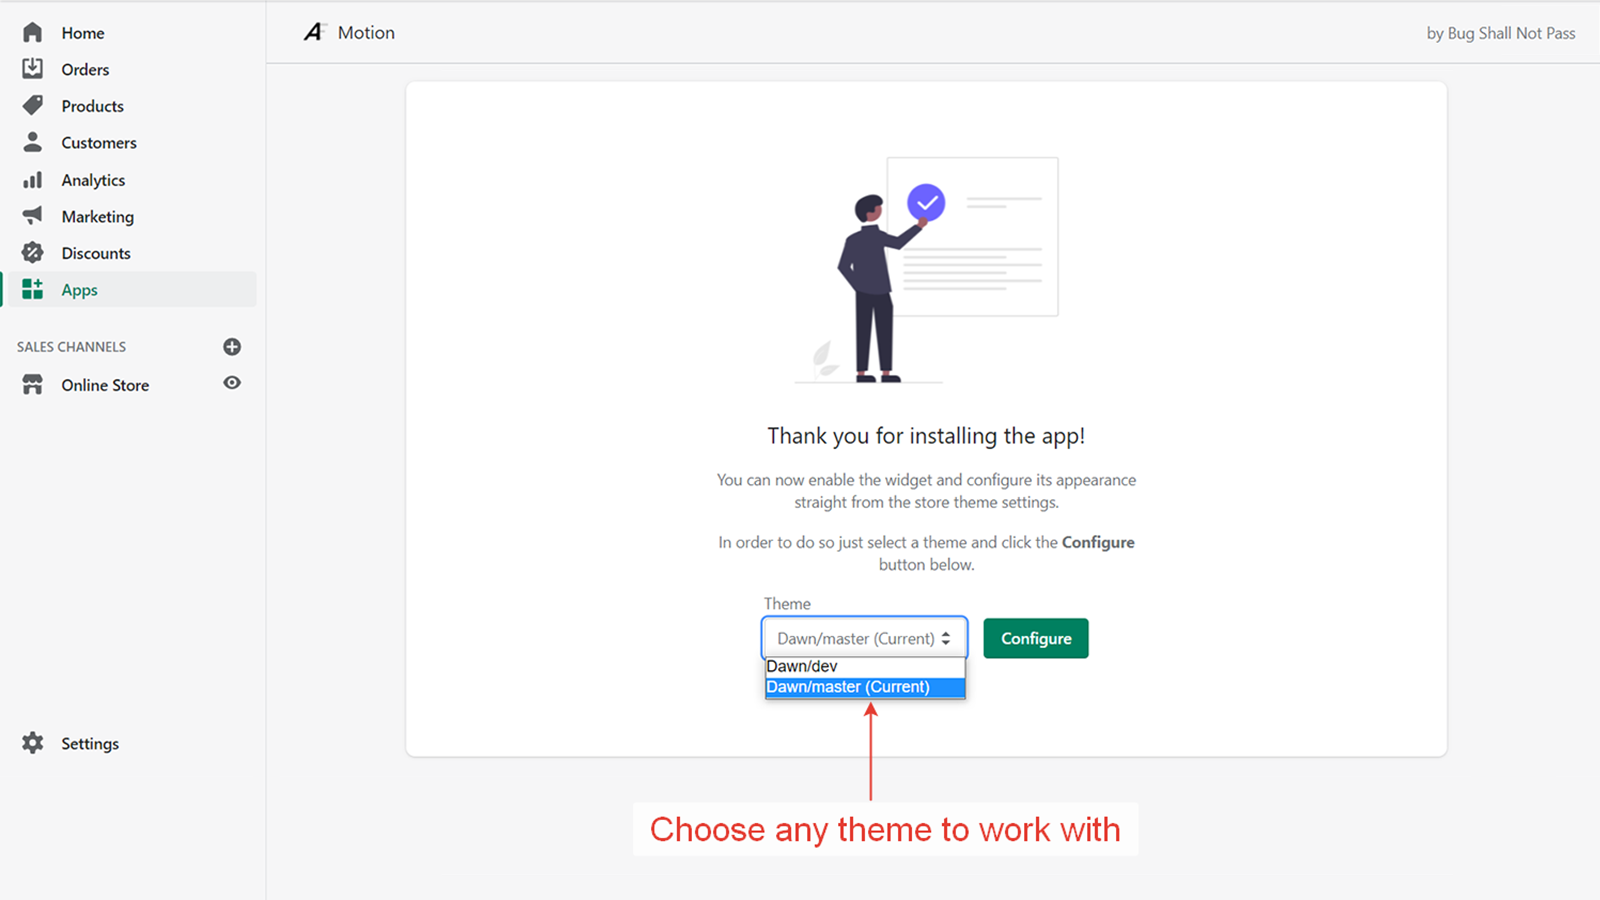 Choose any theme to work with